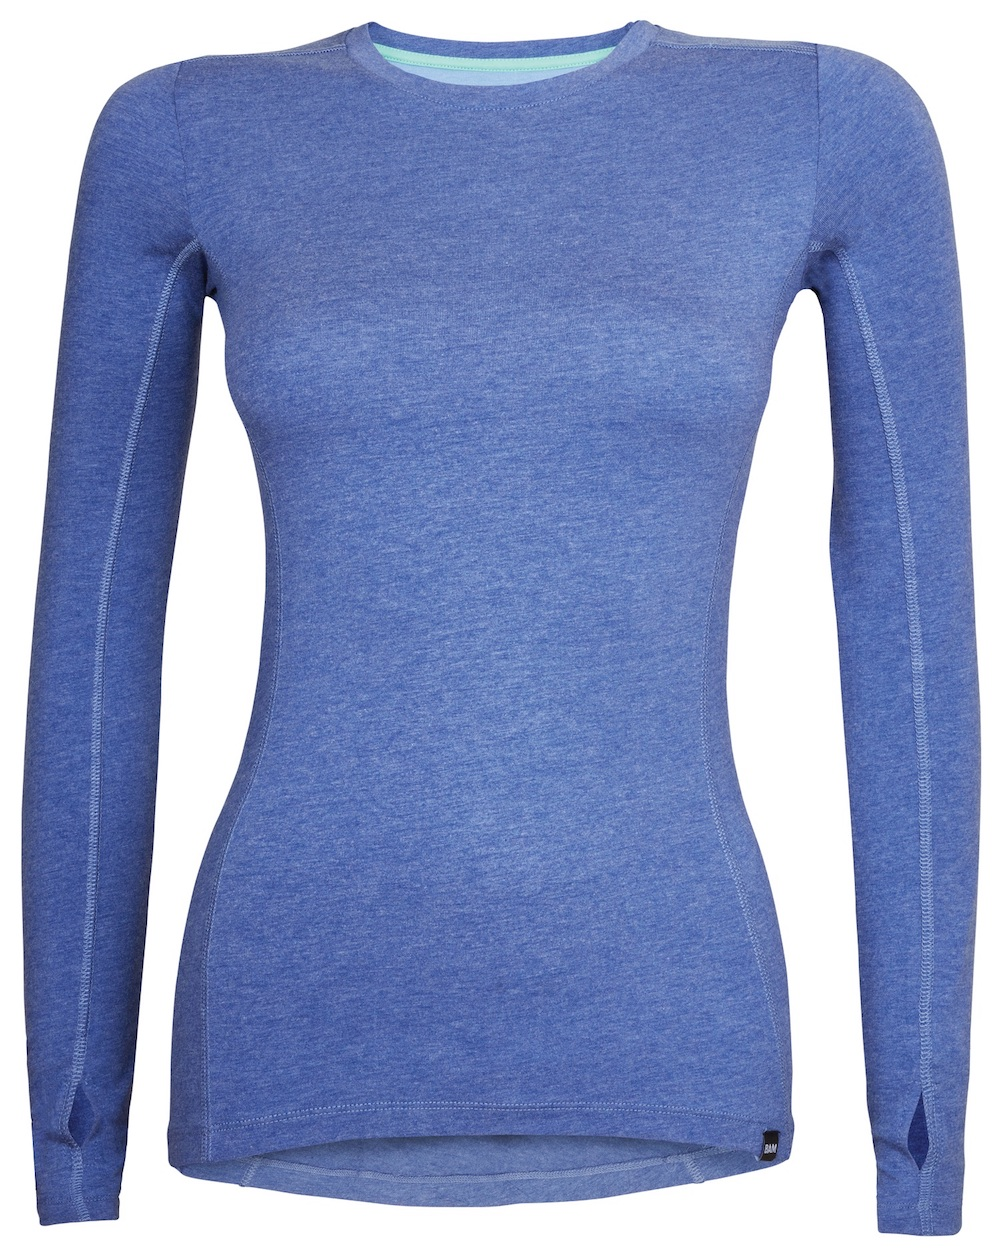 The base layer in hyacinth